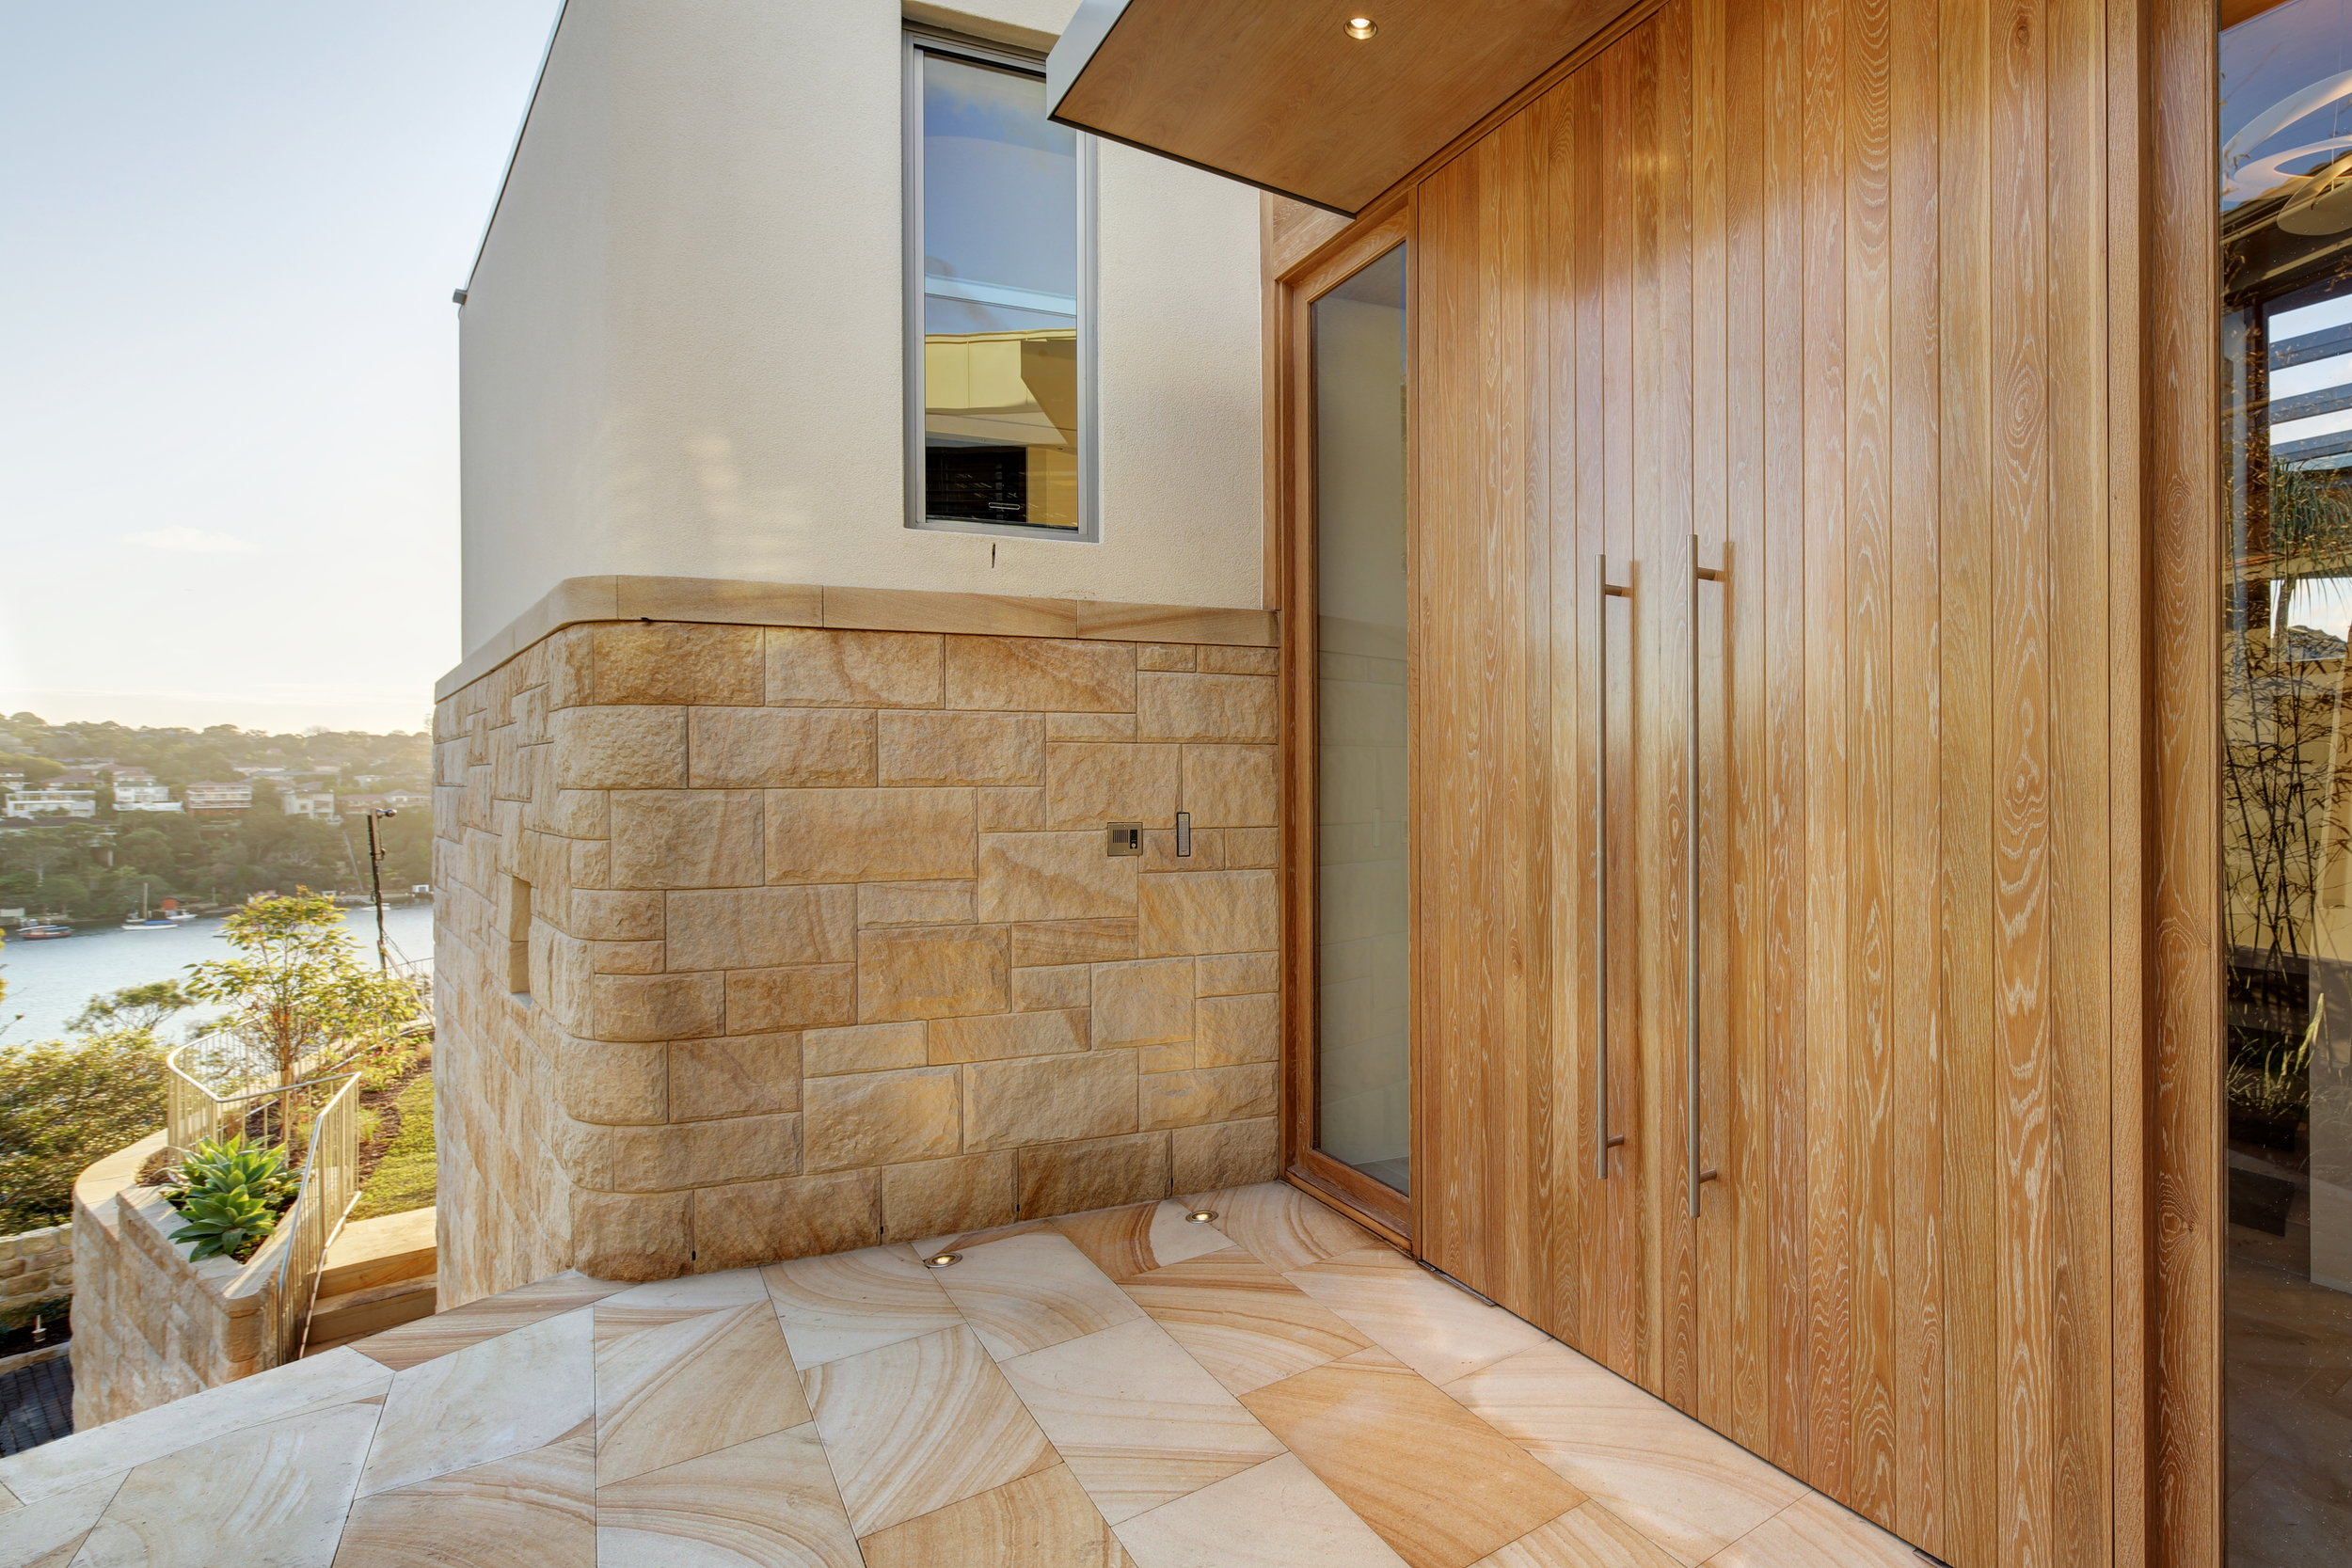 BAY STREET HOUSE MOSMAN light brown random square rockfaced cladding curved walling artistry in stone (7).jpg